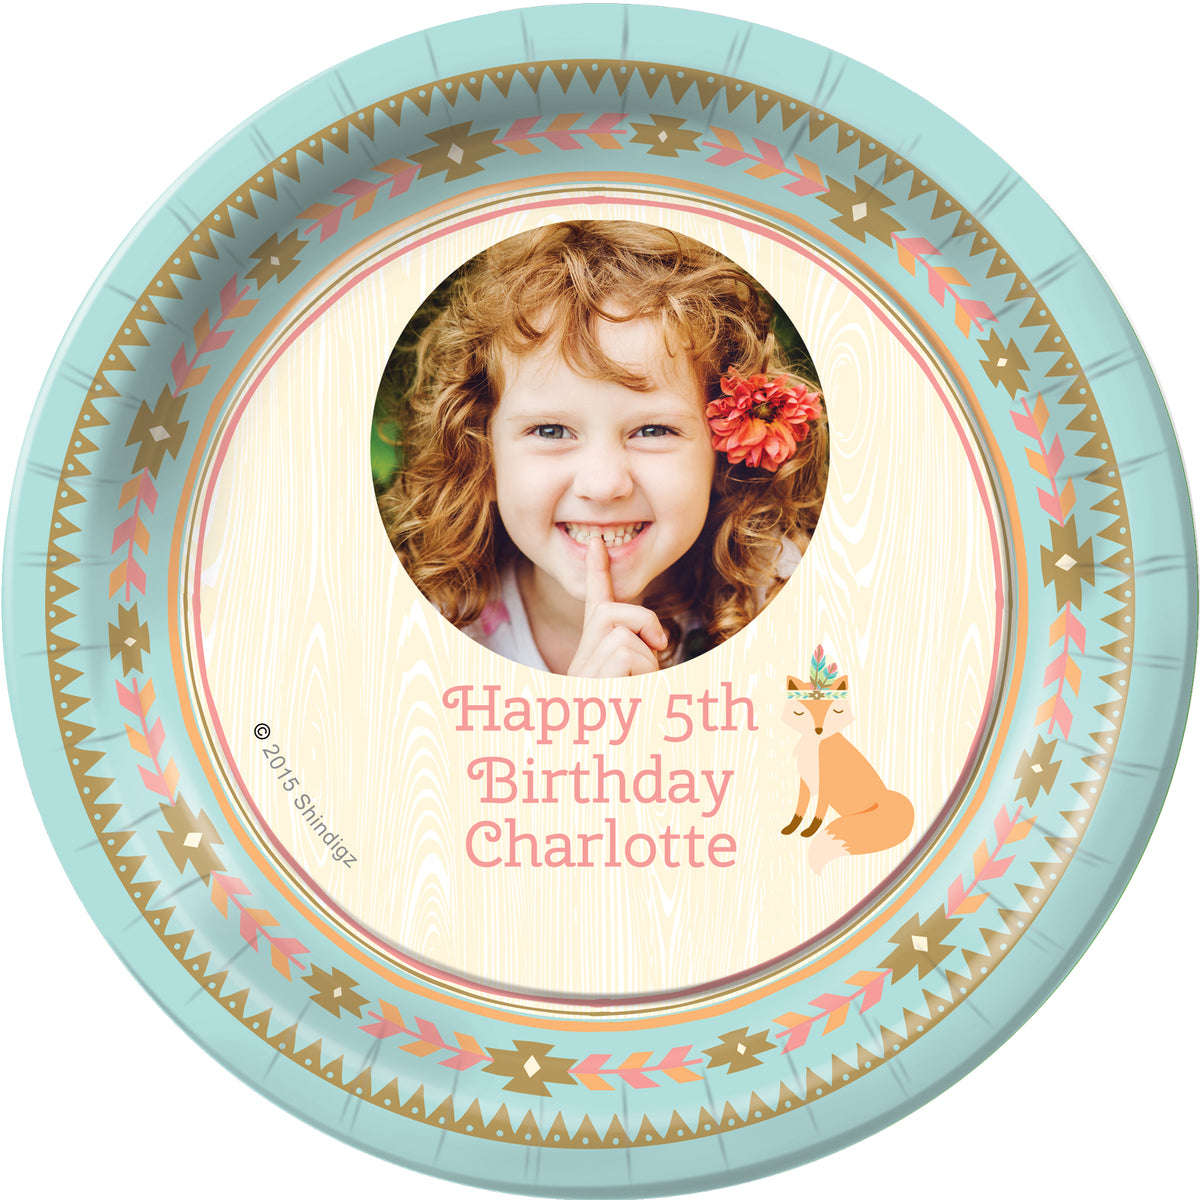 Sweetest Dreams Personalized Dessert Plates